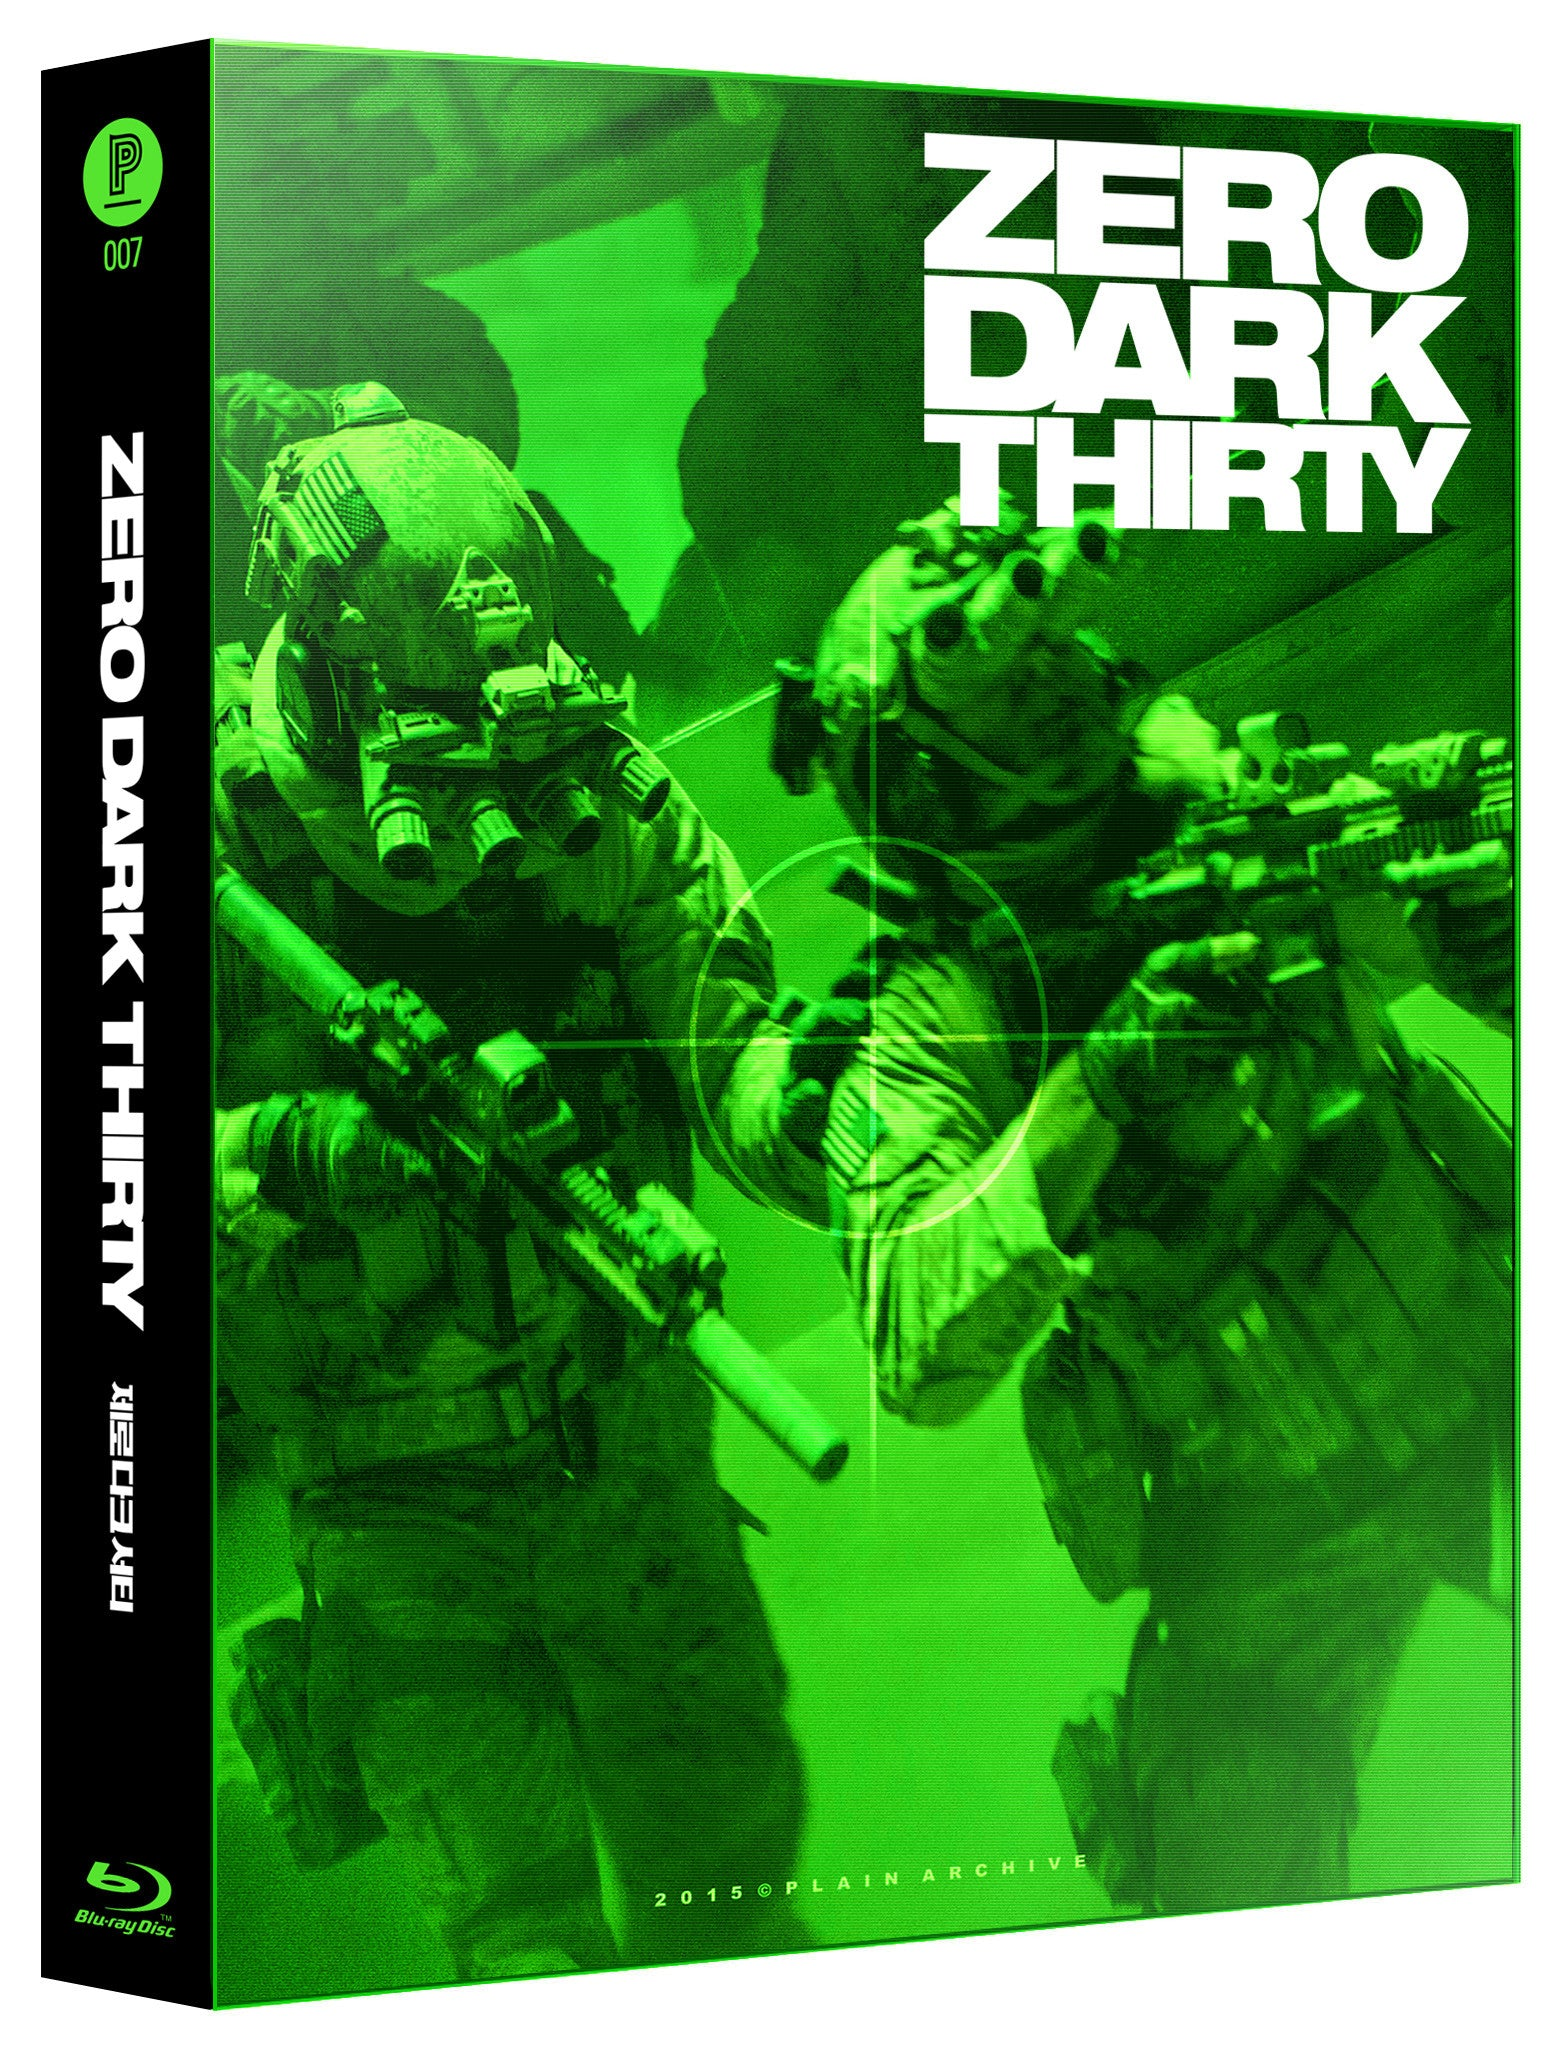 ZERO DARK THIRTY Steelbook with PET full slip